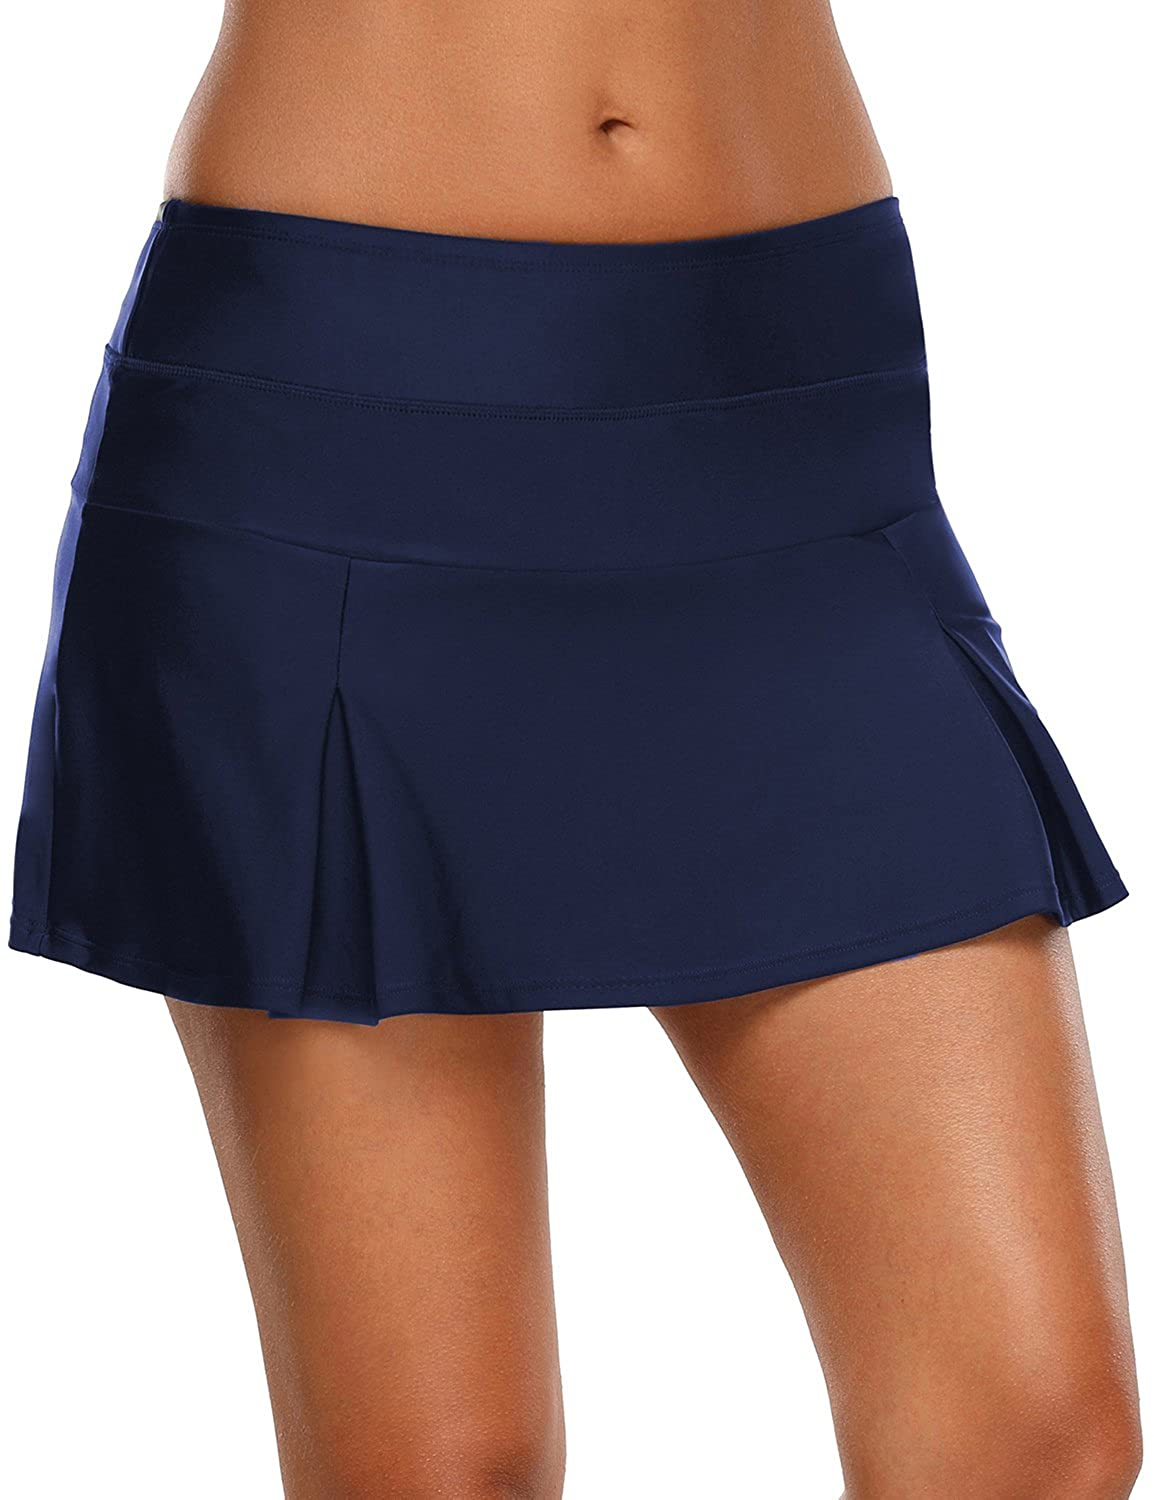 59ce29de43 Basic swimsuit bottom features flared shape with pleated details. This swim  skirt is constructed in soft and comfortable panty